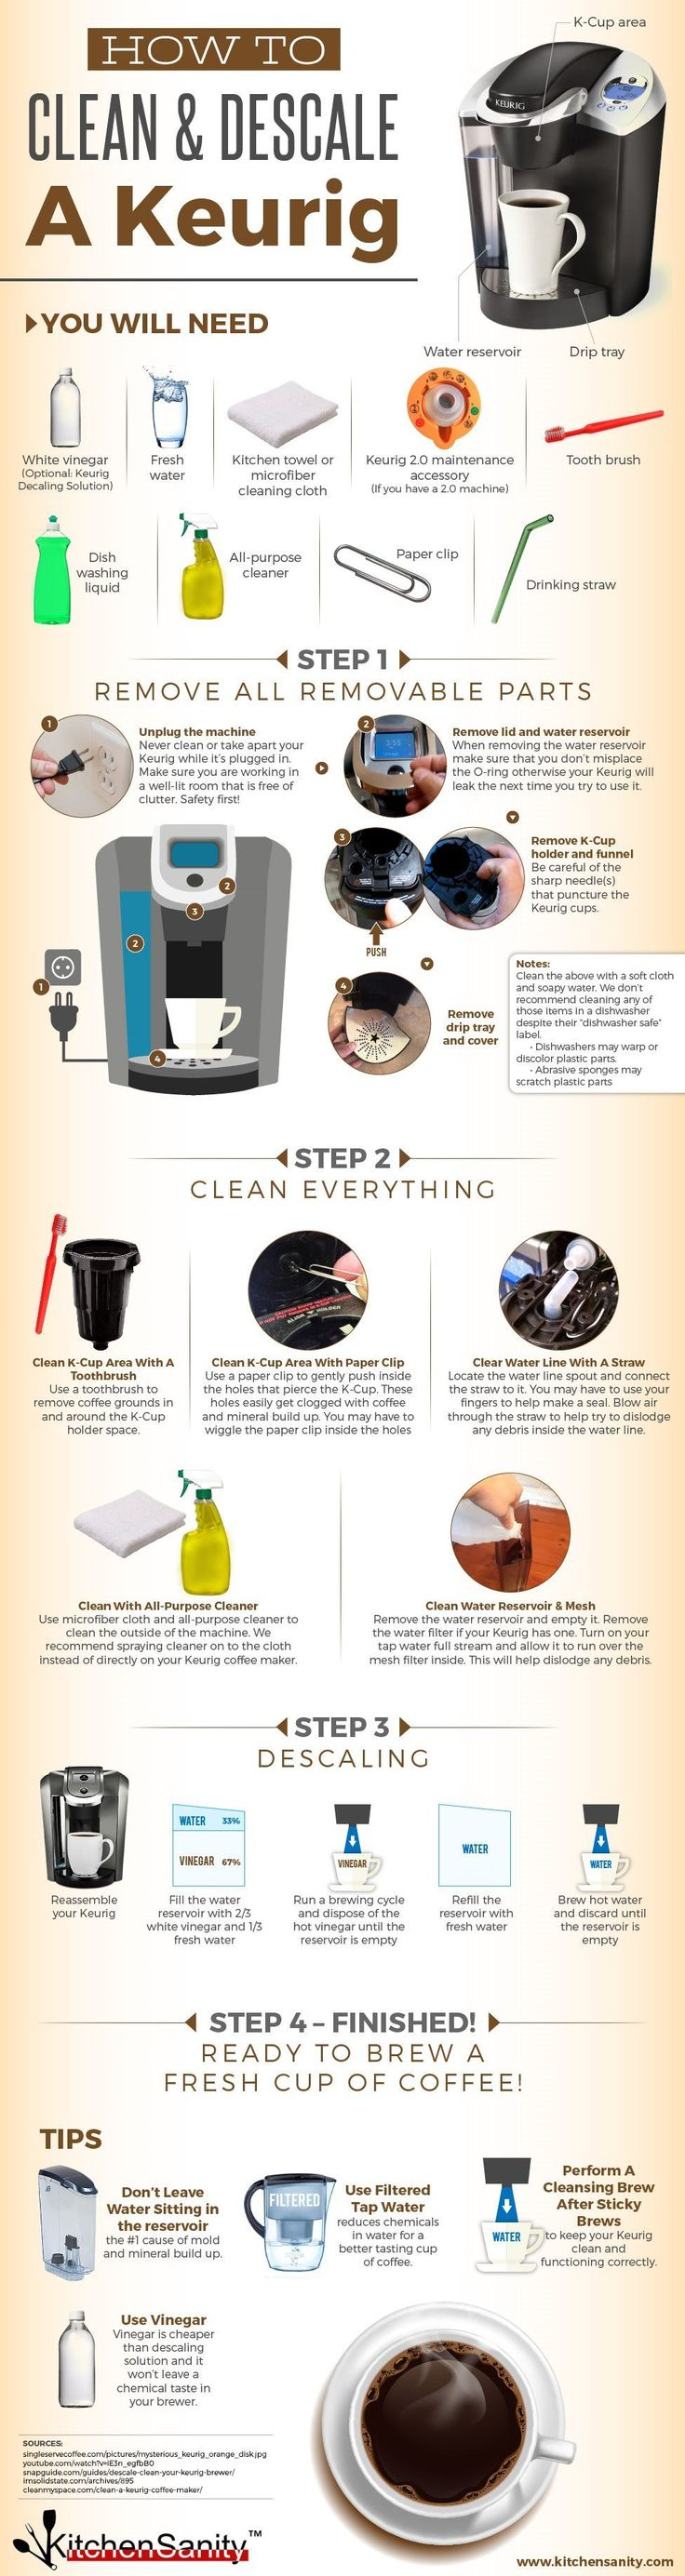 How To Clean And Descale A Keurig Infographic